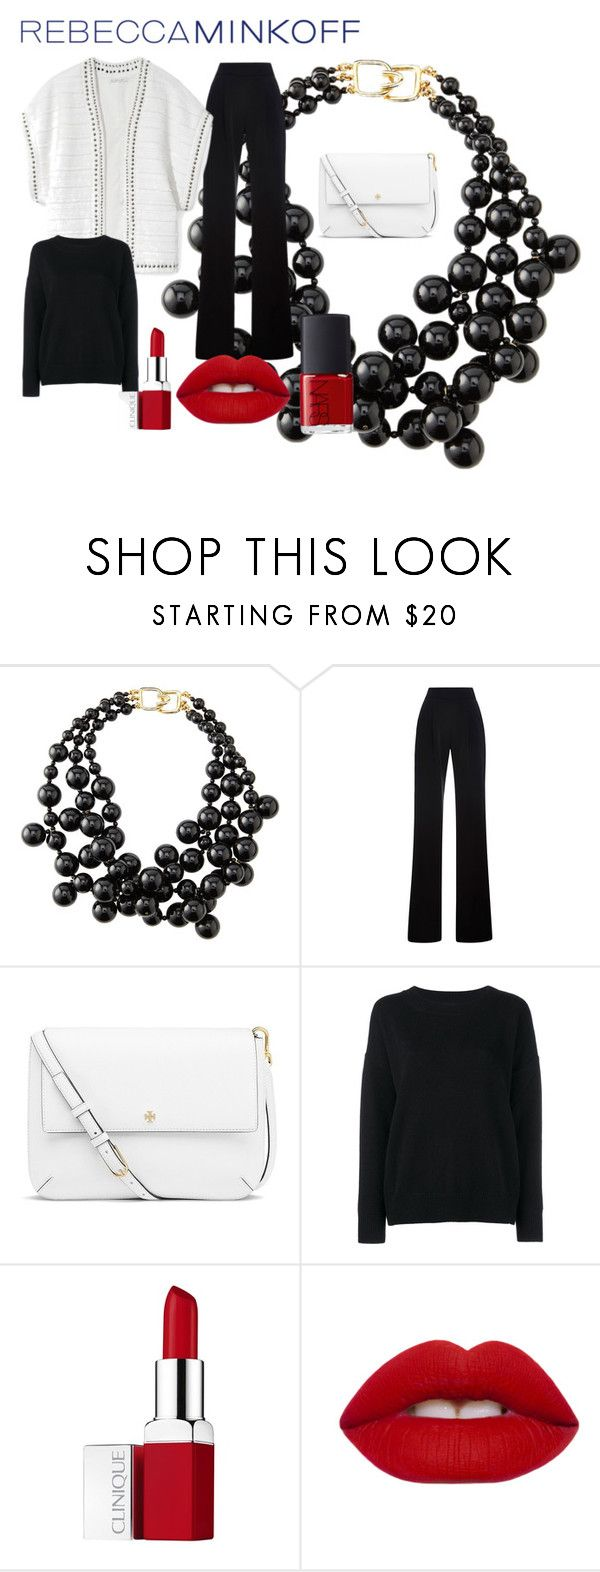 """""""Rebecca Minkoff's Spring 2016 Collection"""" by klara-kandare ❤ liked on Polyvore featuring Kenneth Jay Lane, Rebecca Minkoff, Misha Nonoo, Tory Burch, Frame Denim, Clinique, Lime Crime, NARS Cosmetics, women's clothing and women"""